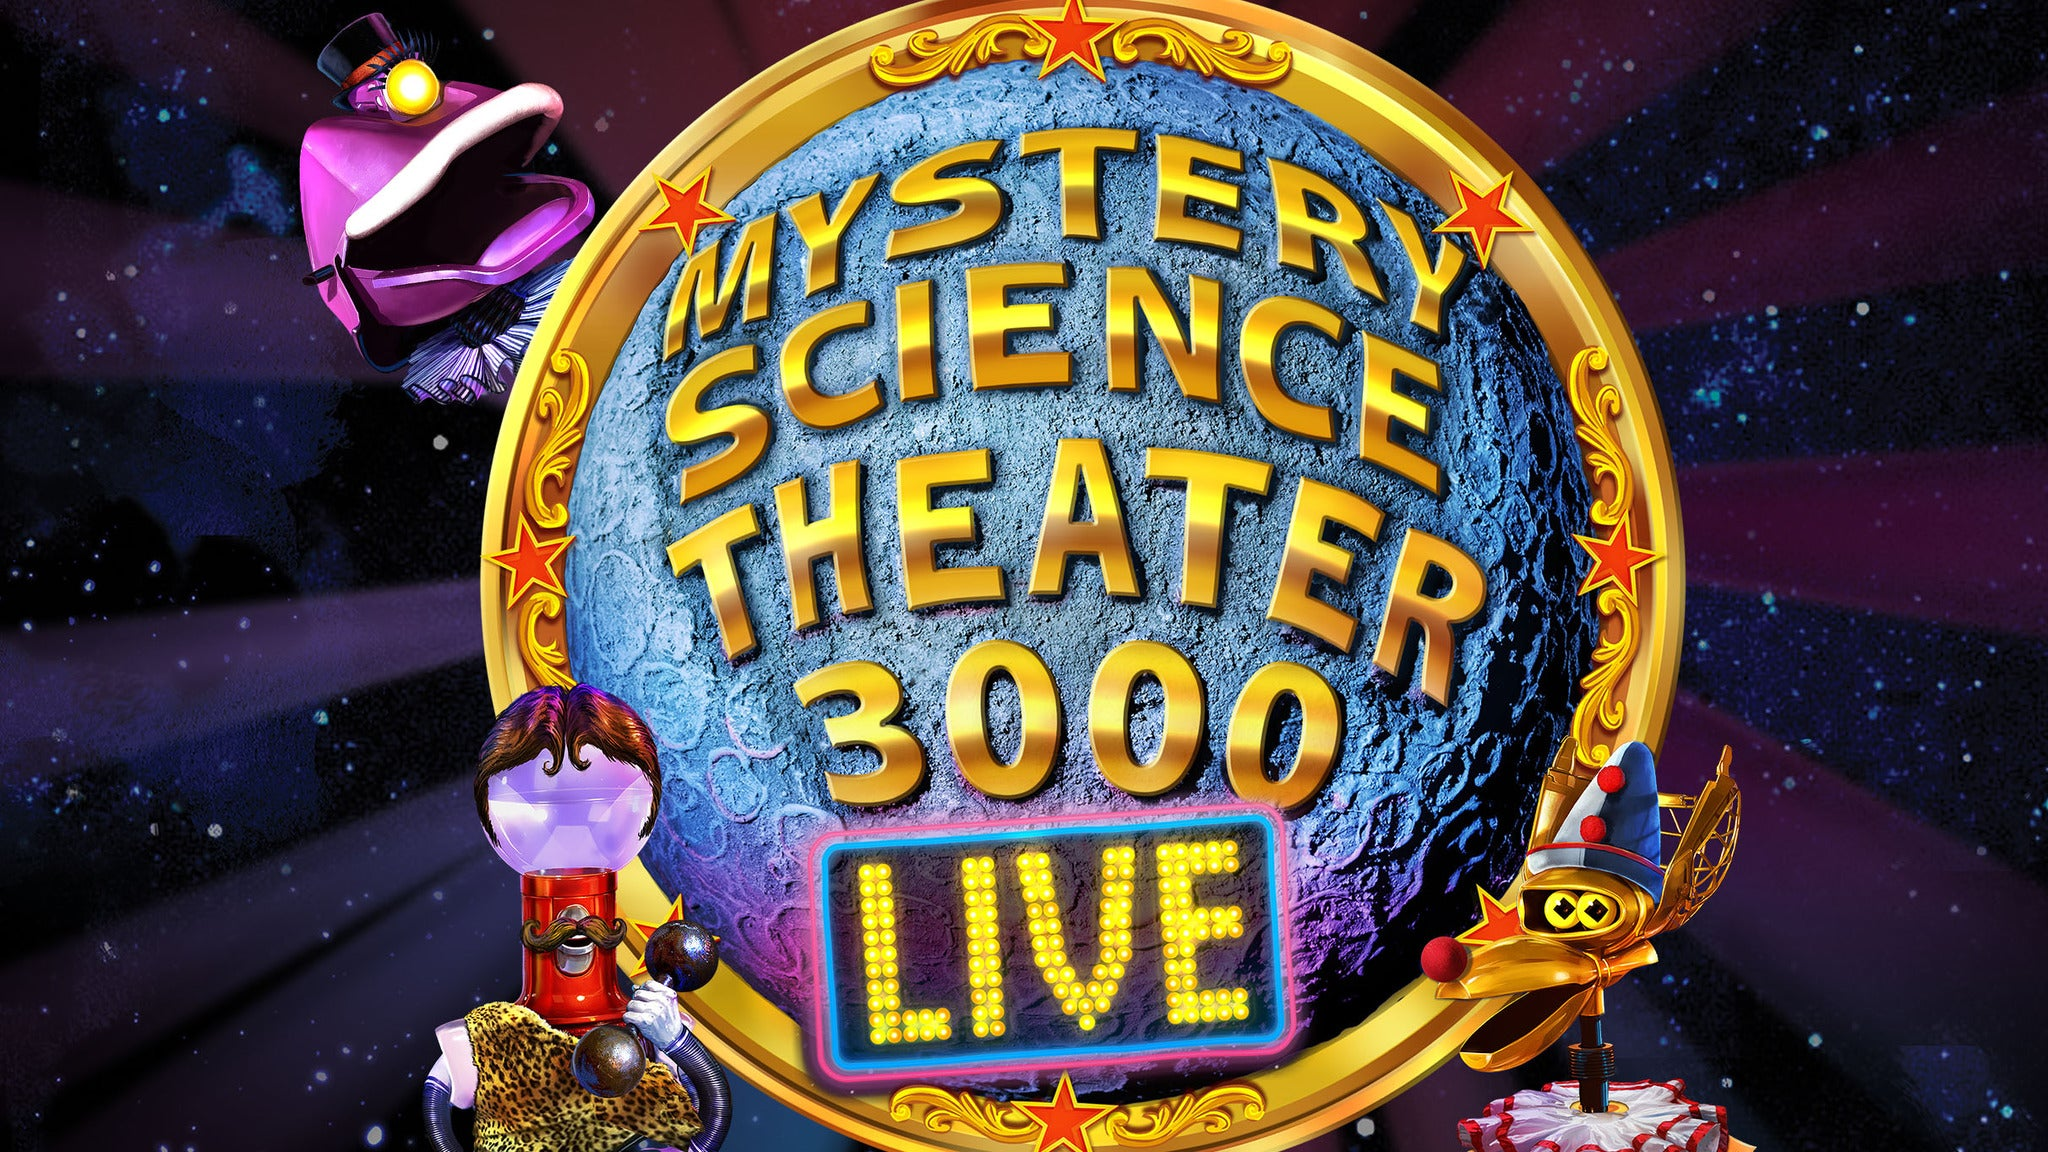 Mystery Science Theater 3000 at Cheyenne Civic Center